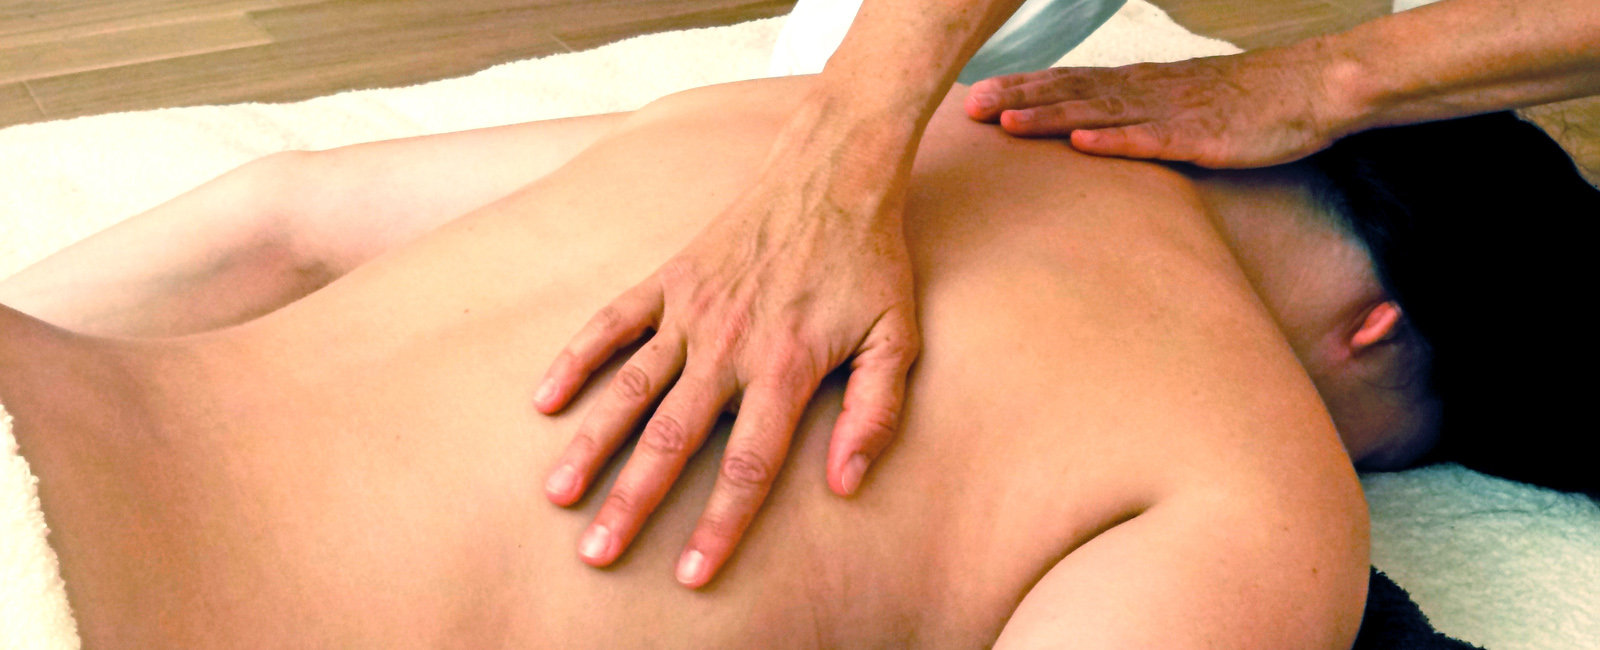 massage-harmonisant2